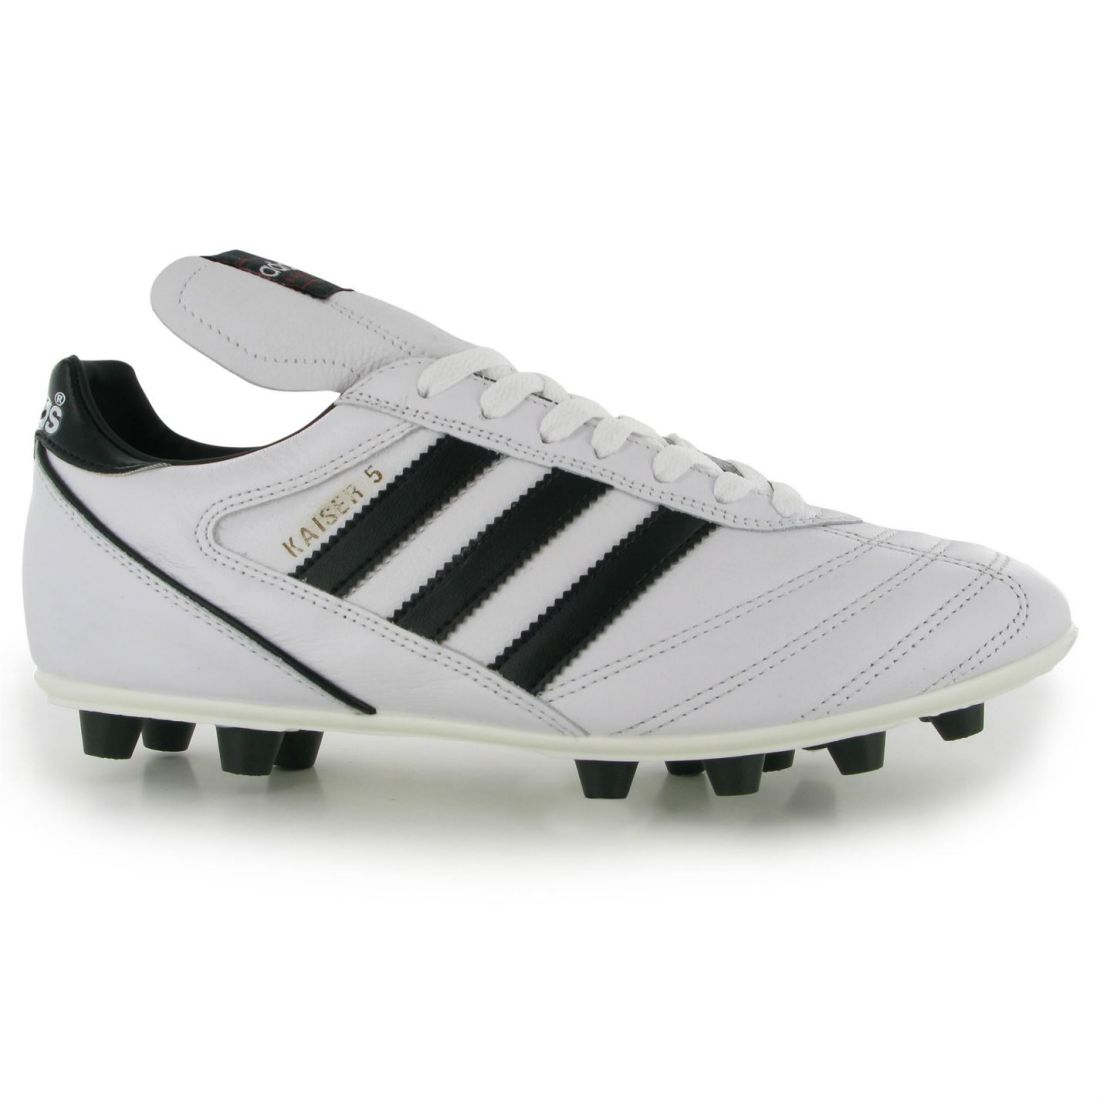 82a56e1db123 adidas Mens Gents Kaiser Liga FG Football Boots Laces Fastened Shoes  Footwear